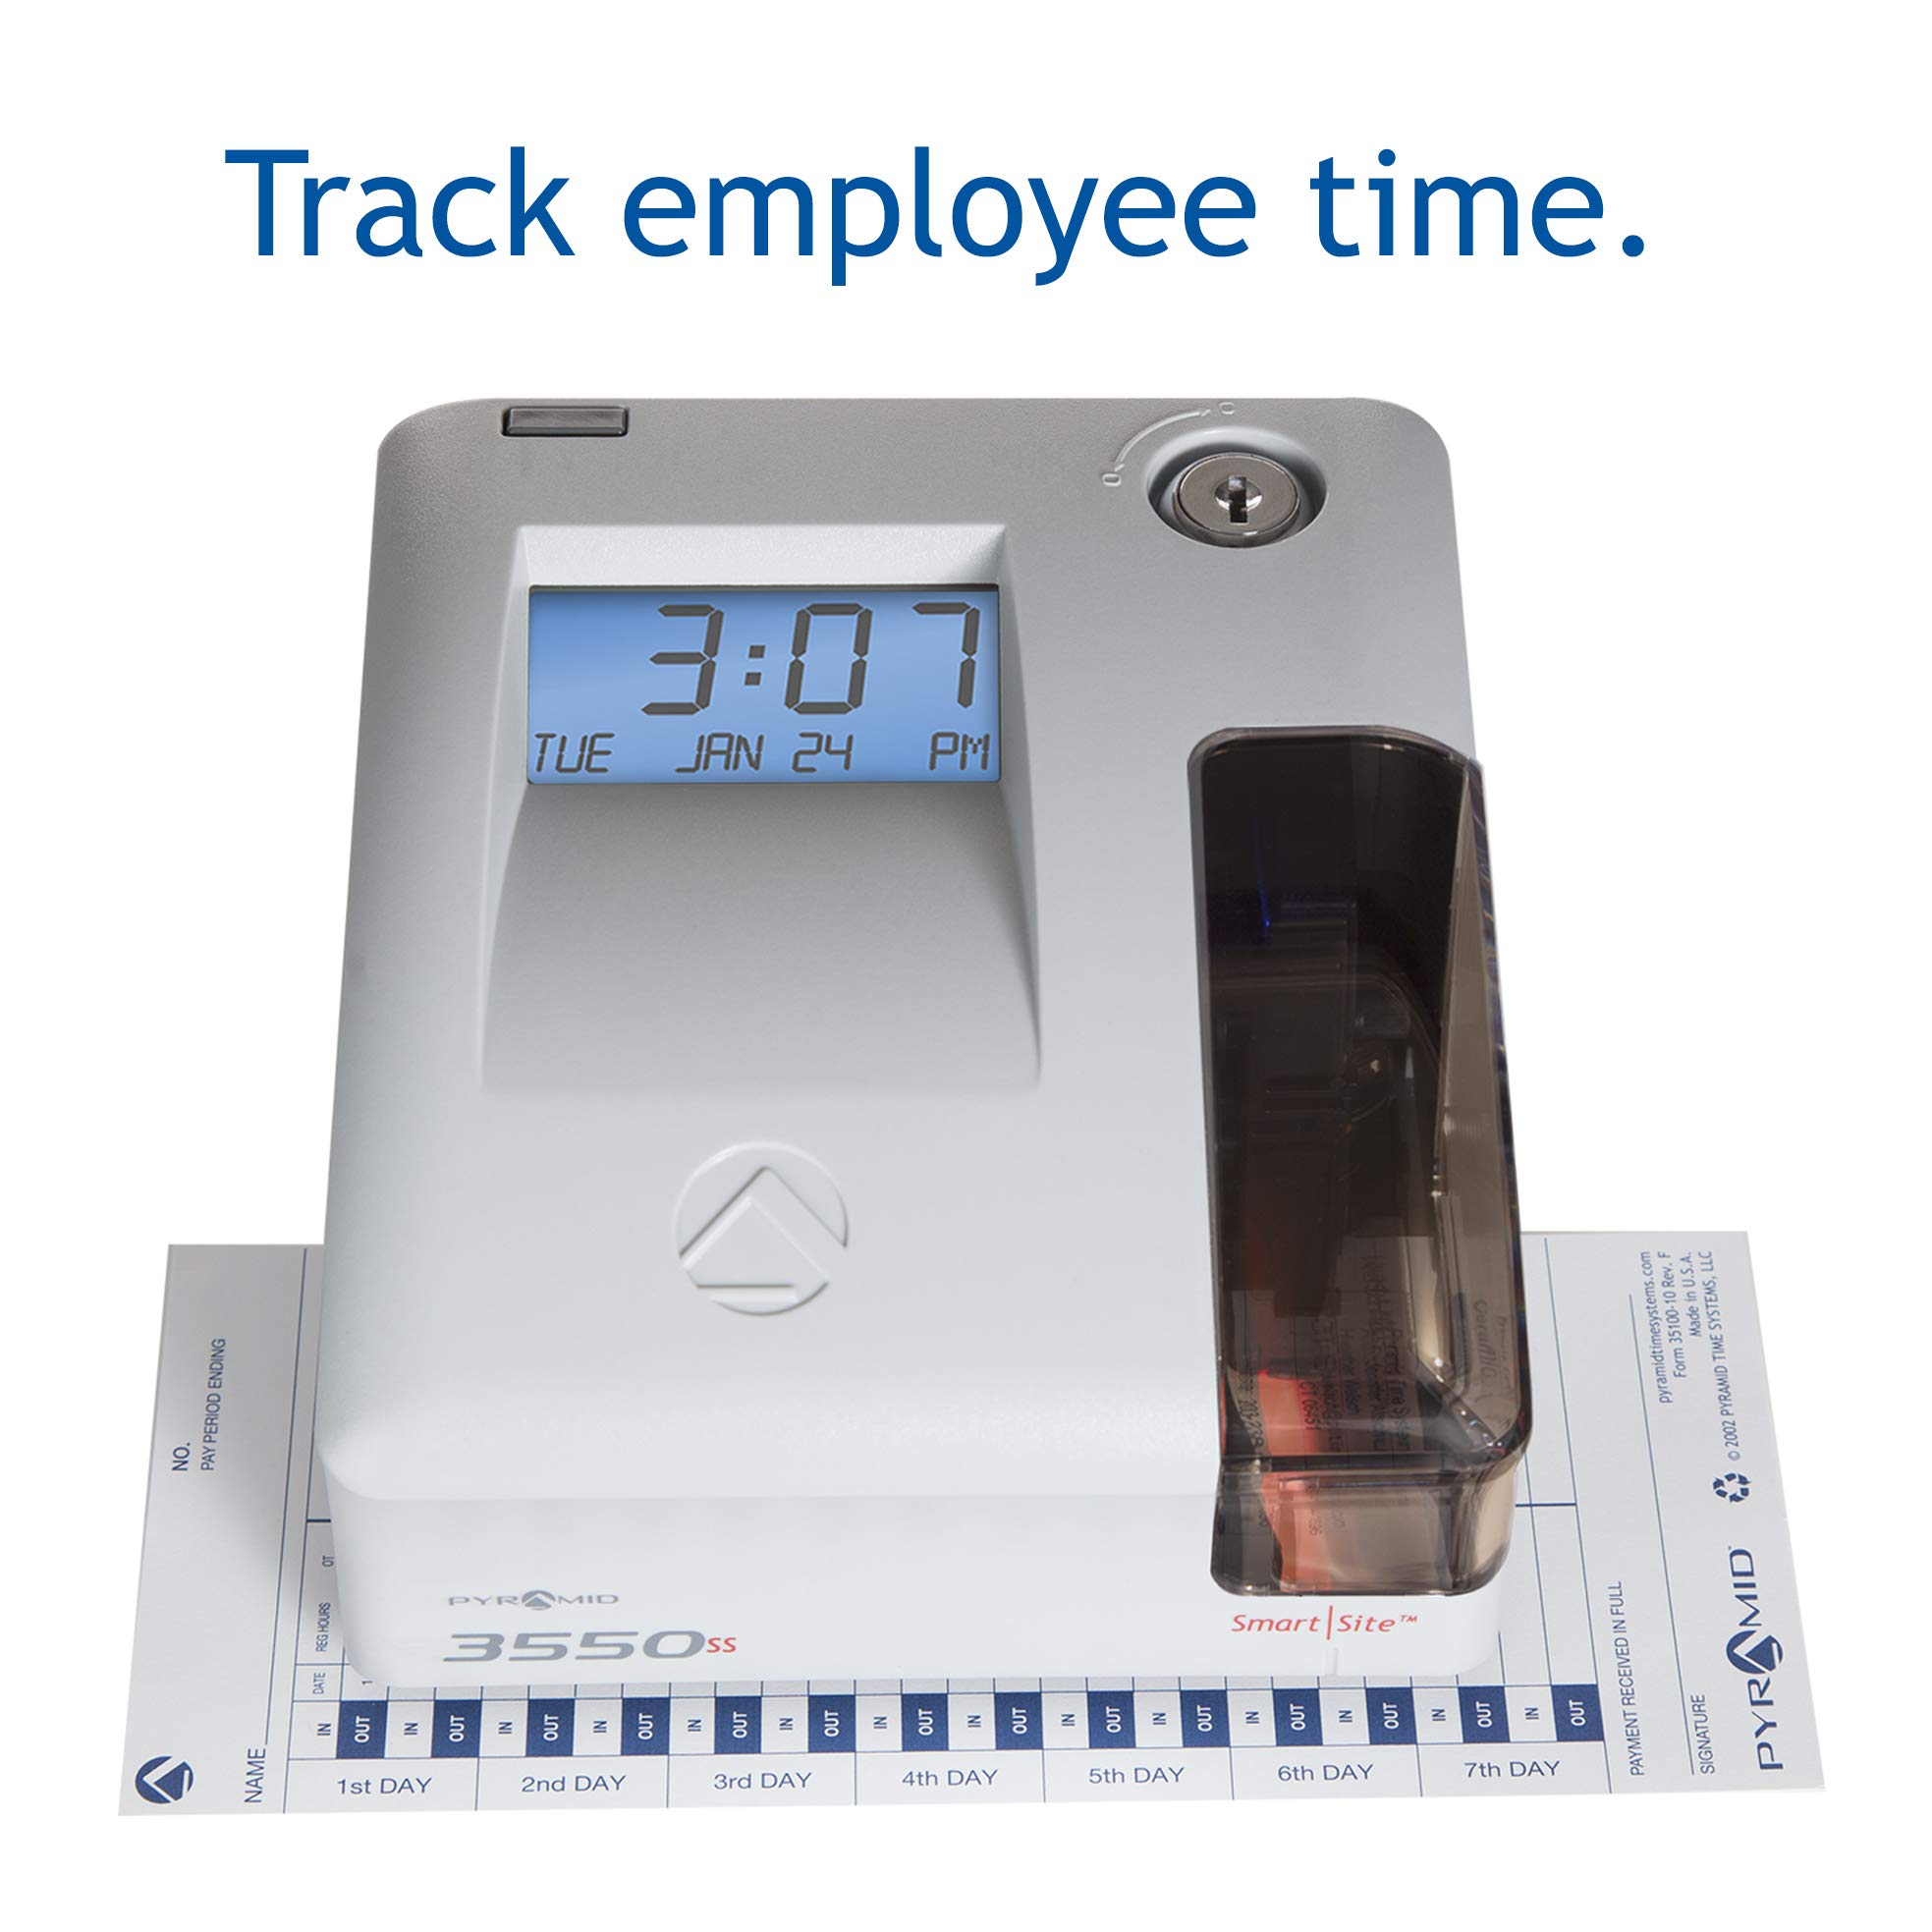 Pyramid 3550ss SmartSite Time Clock and Document Stamp - Made in USA by Pyramid Time Systems (Image #2)